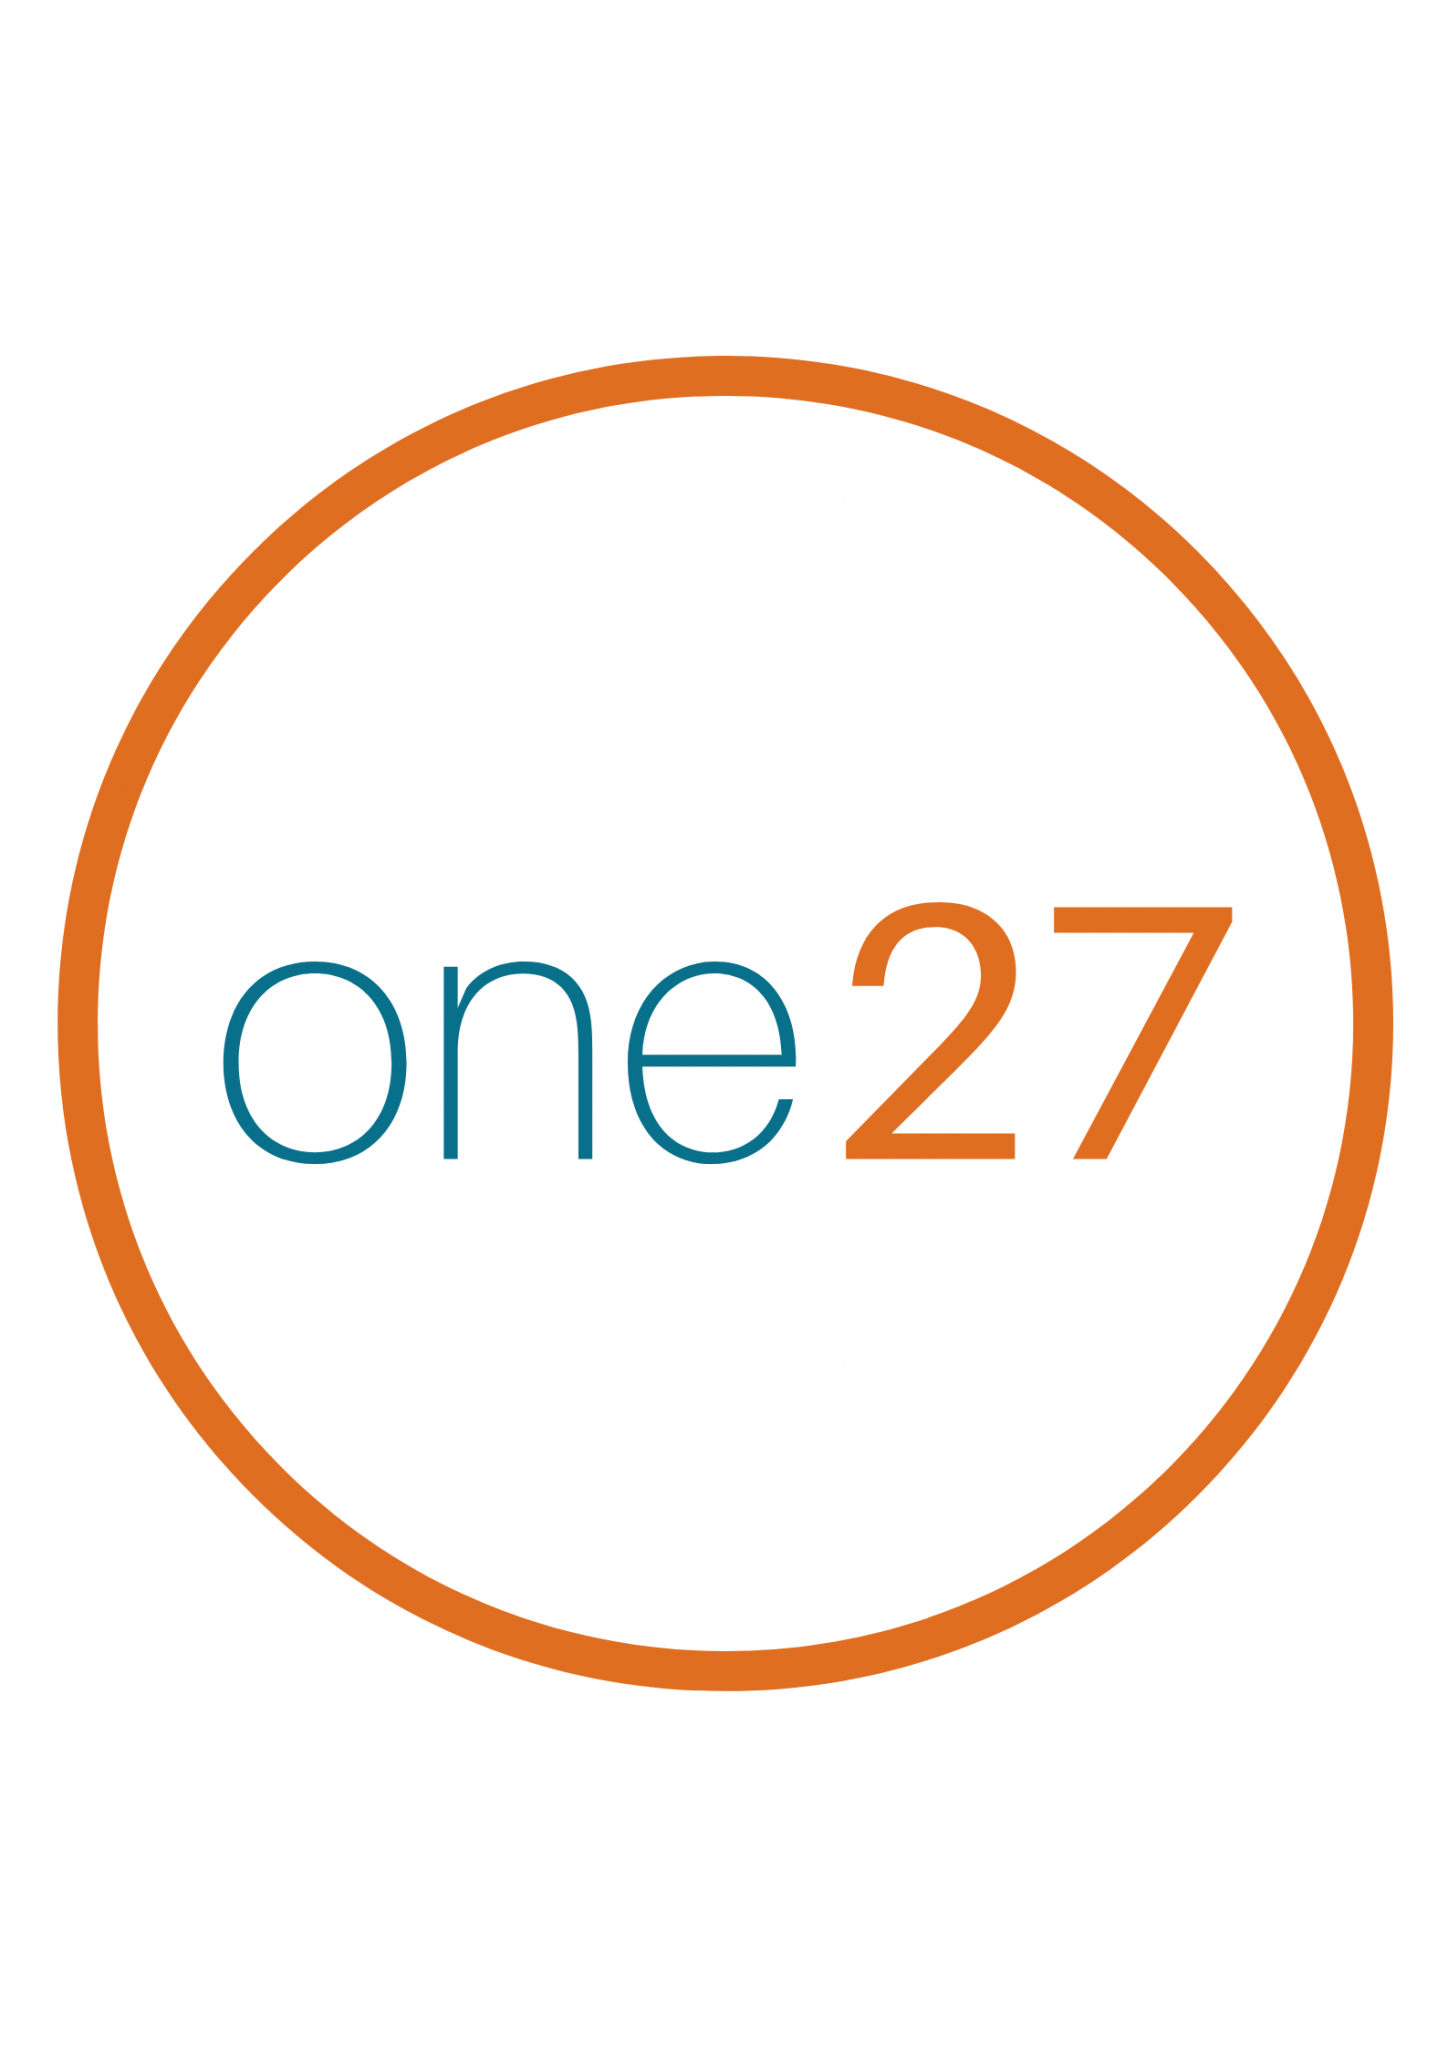 one27